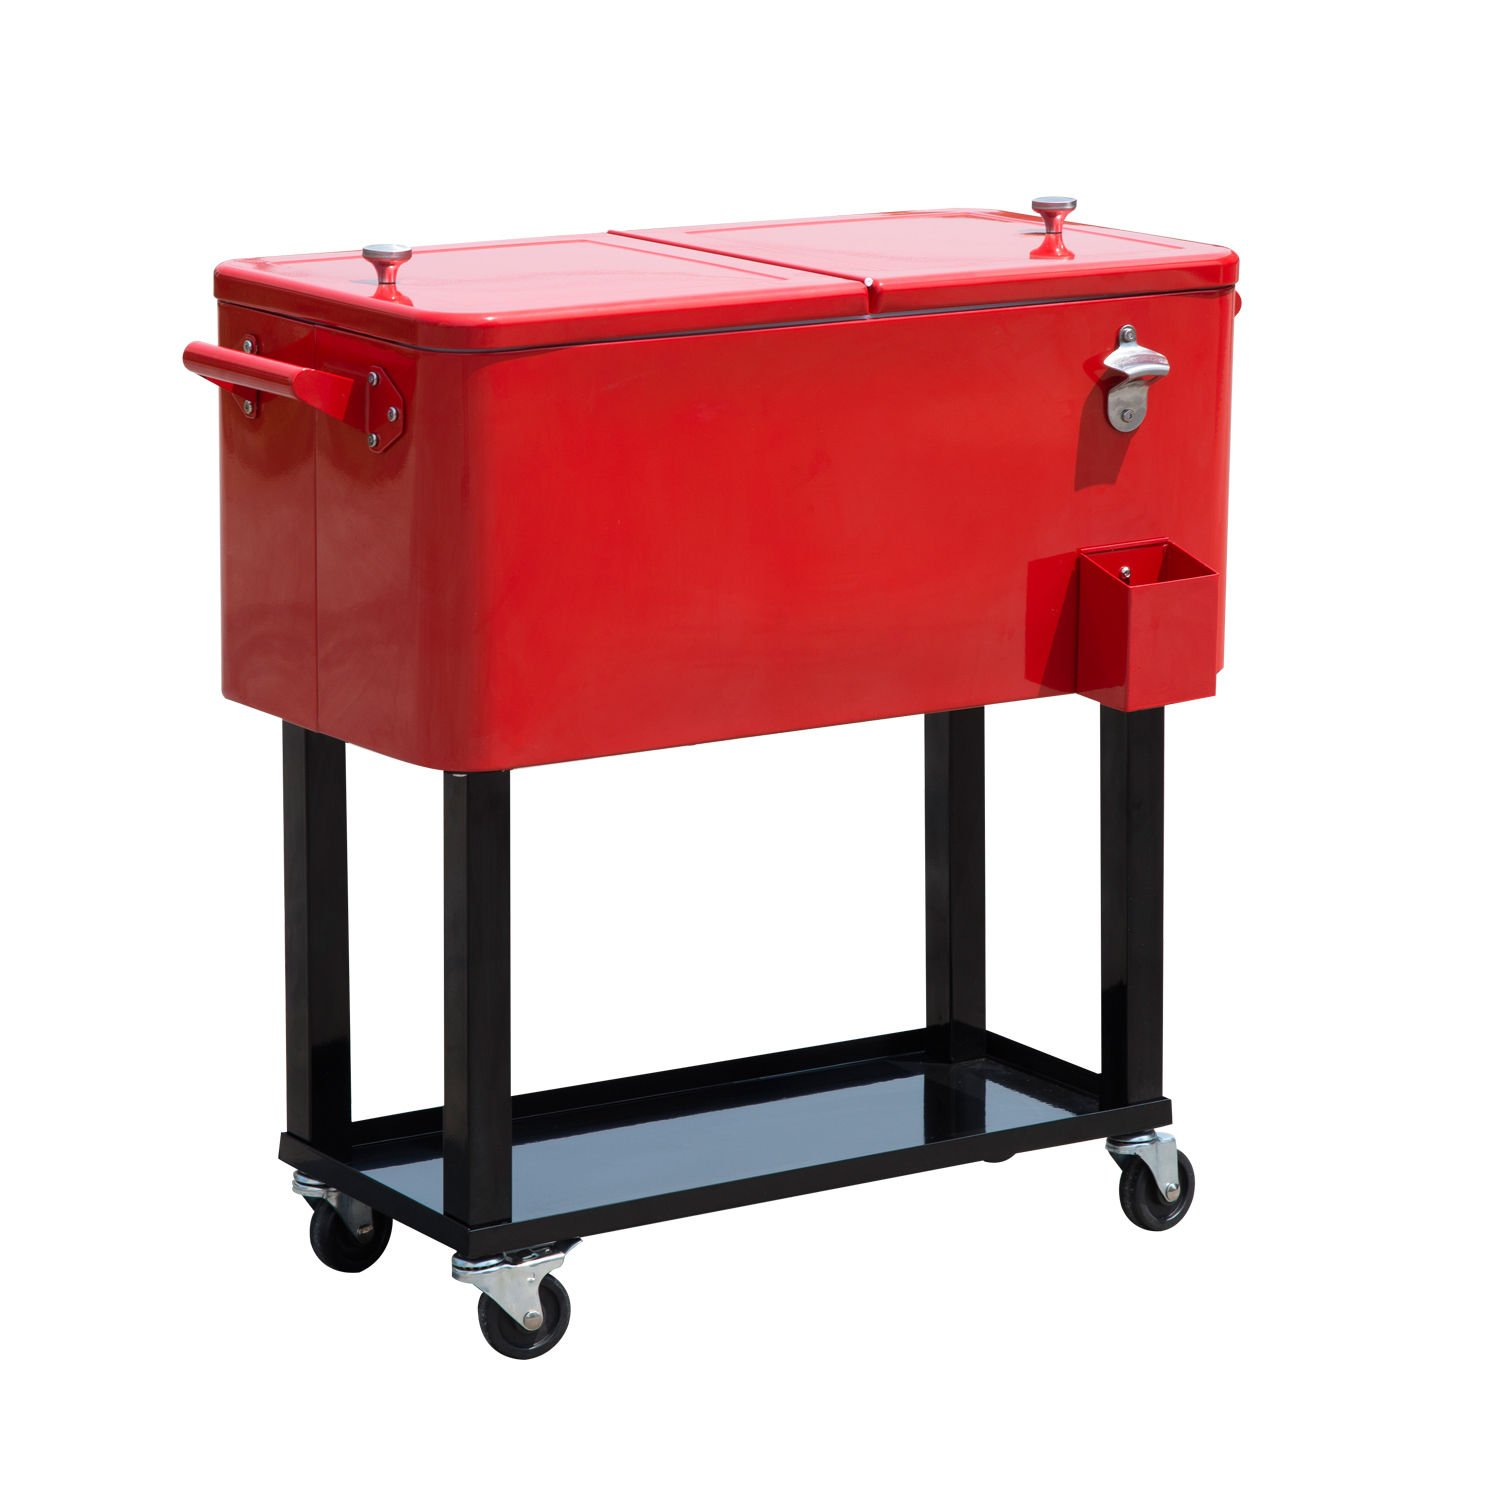 Outsunny 80 QT Rolling Ice Chest Portable Patio Party Drink Cooler Cart - Red by Outsunny